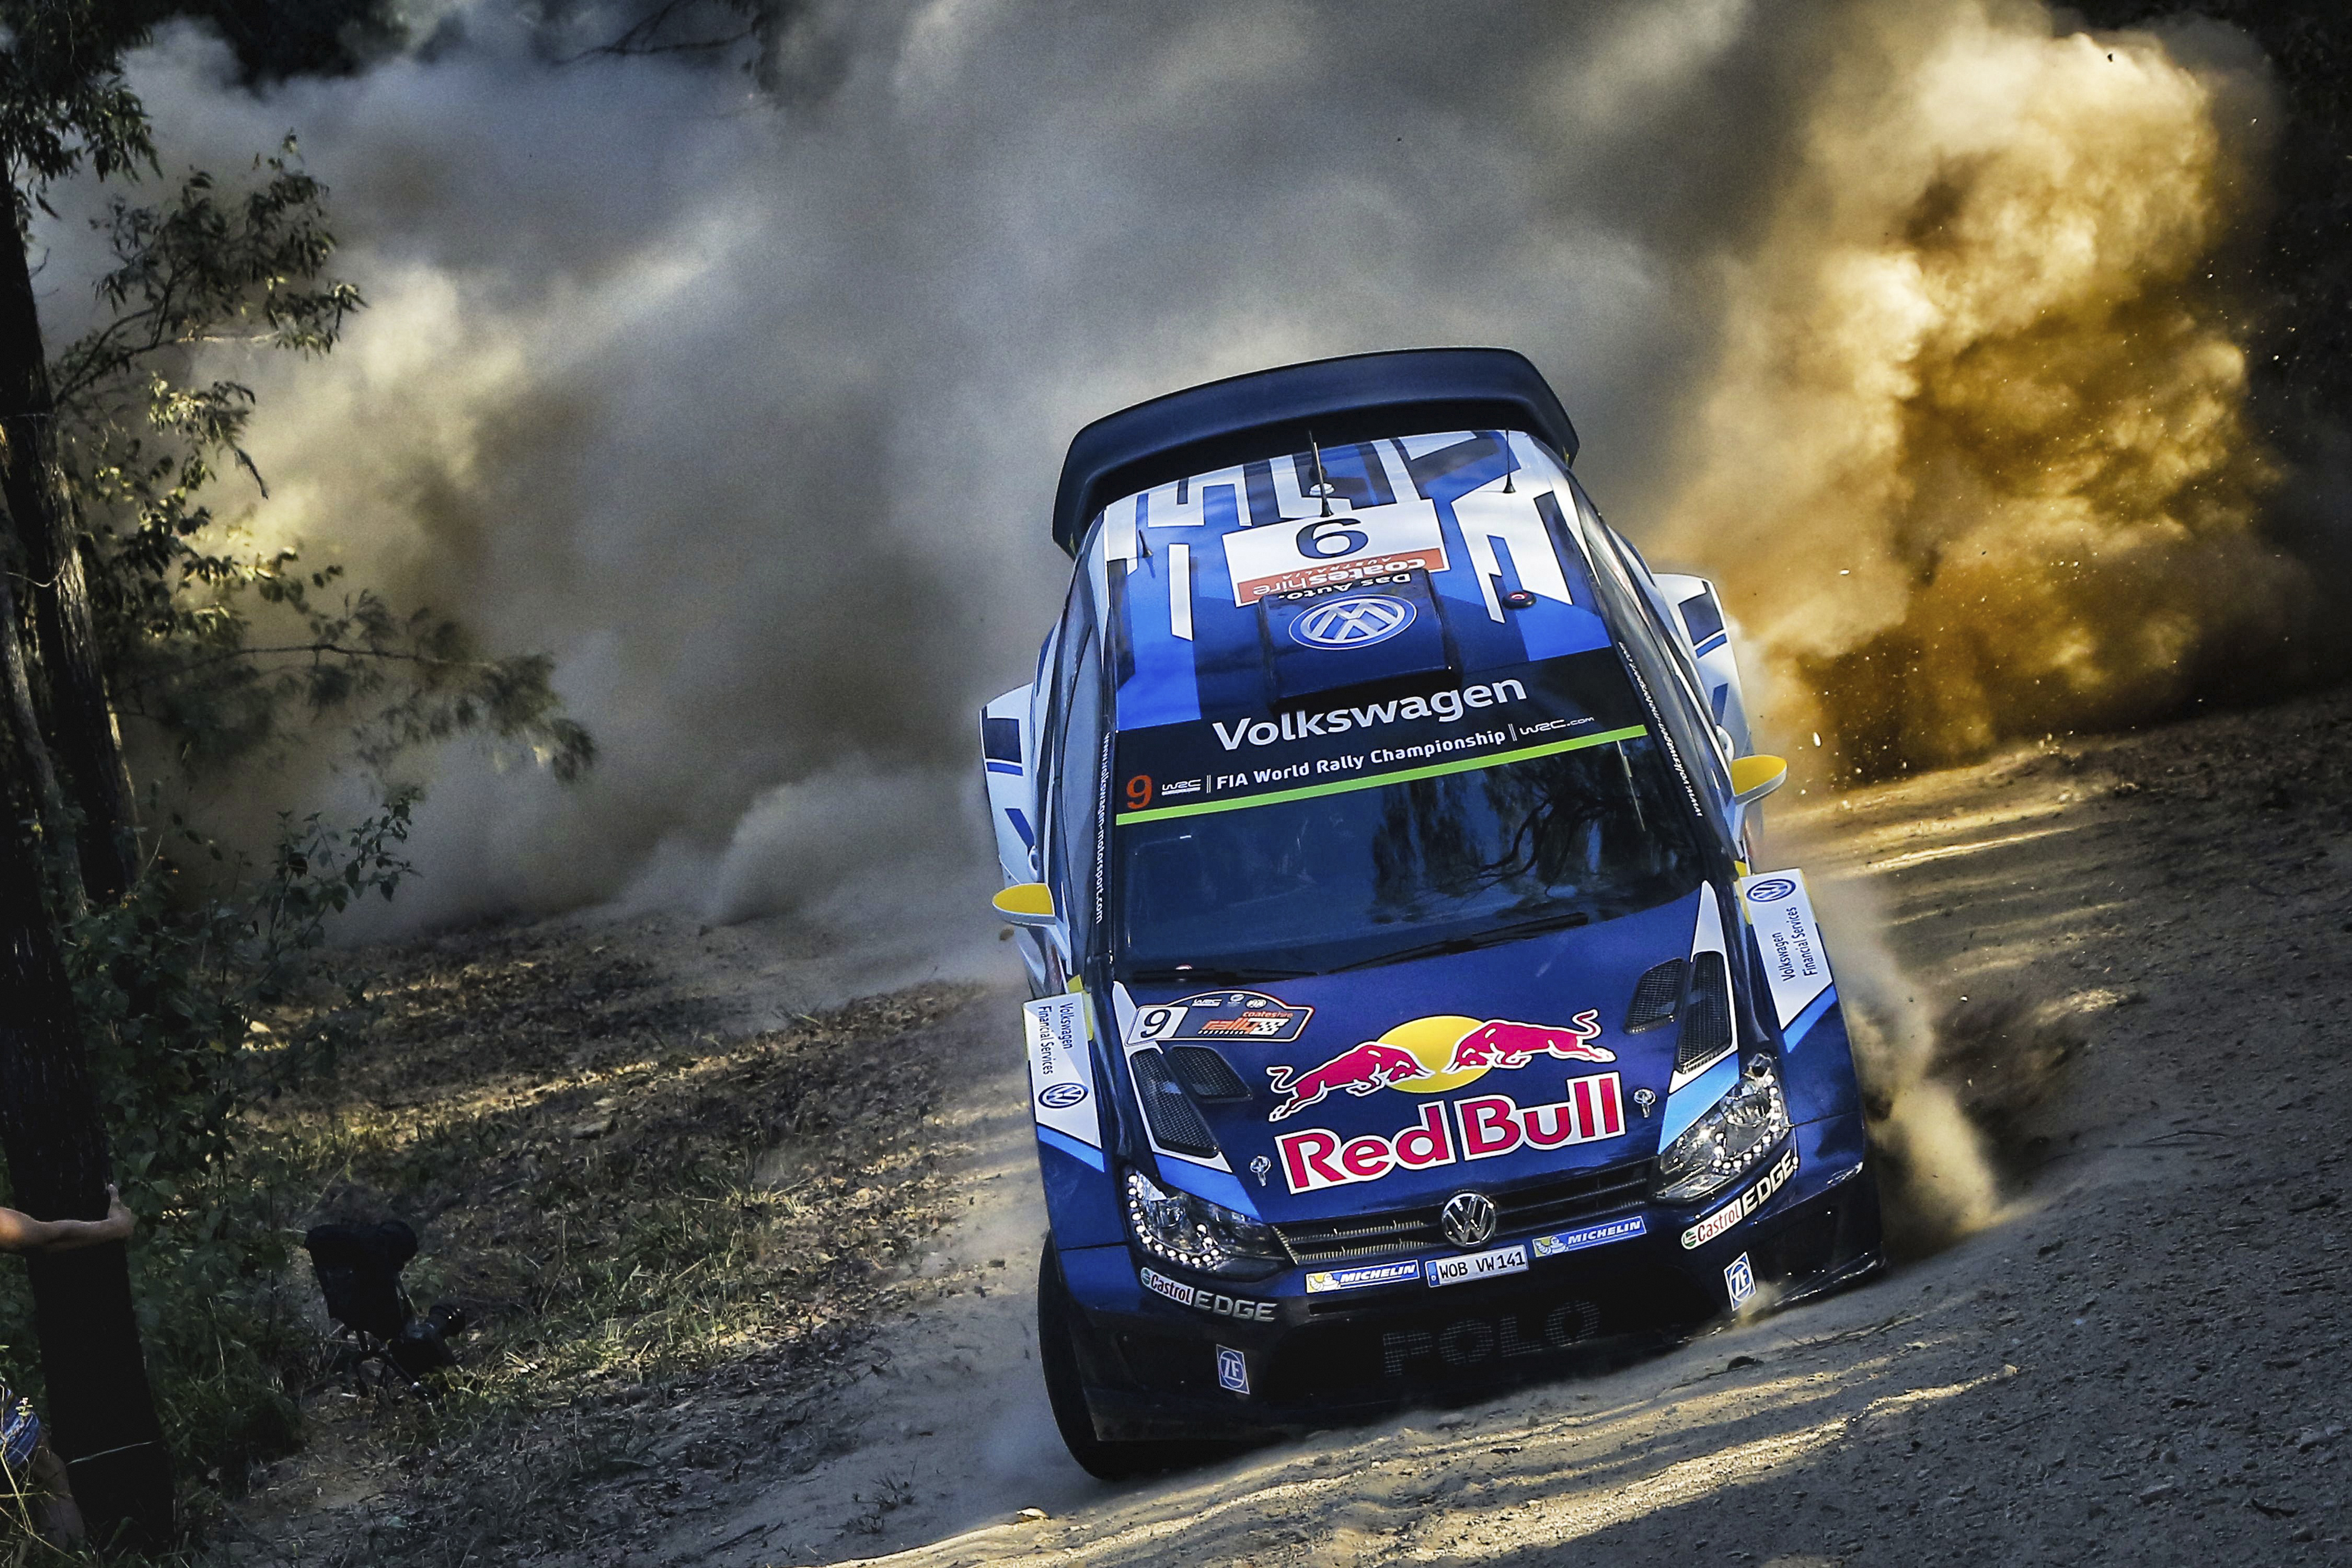 15 epic rally photos for you to drool over